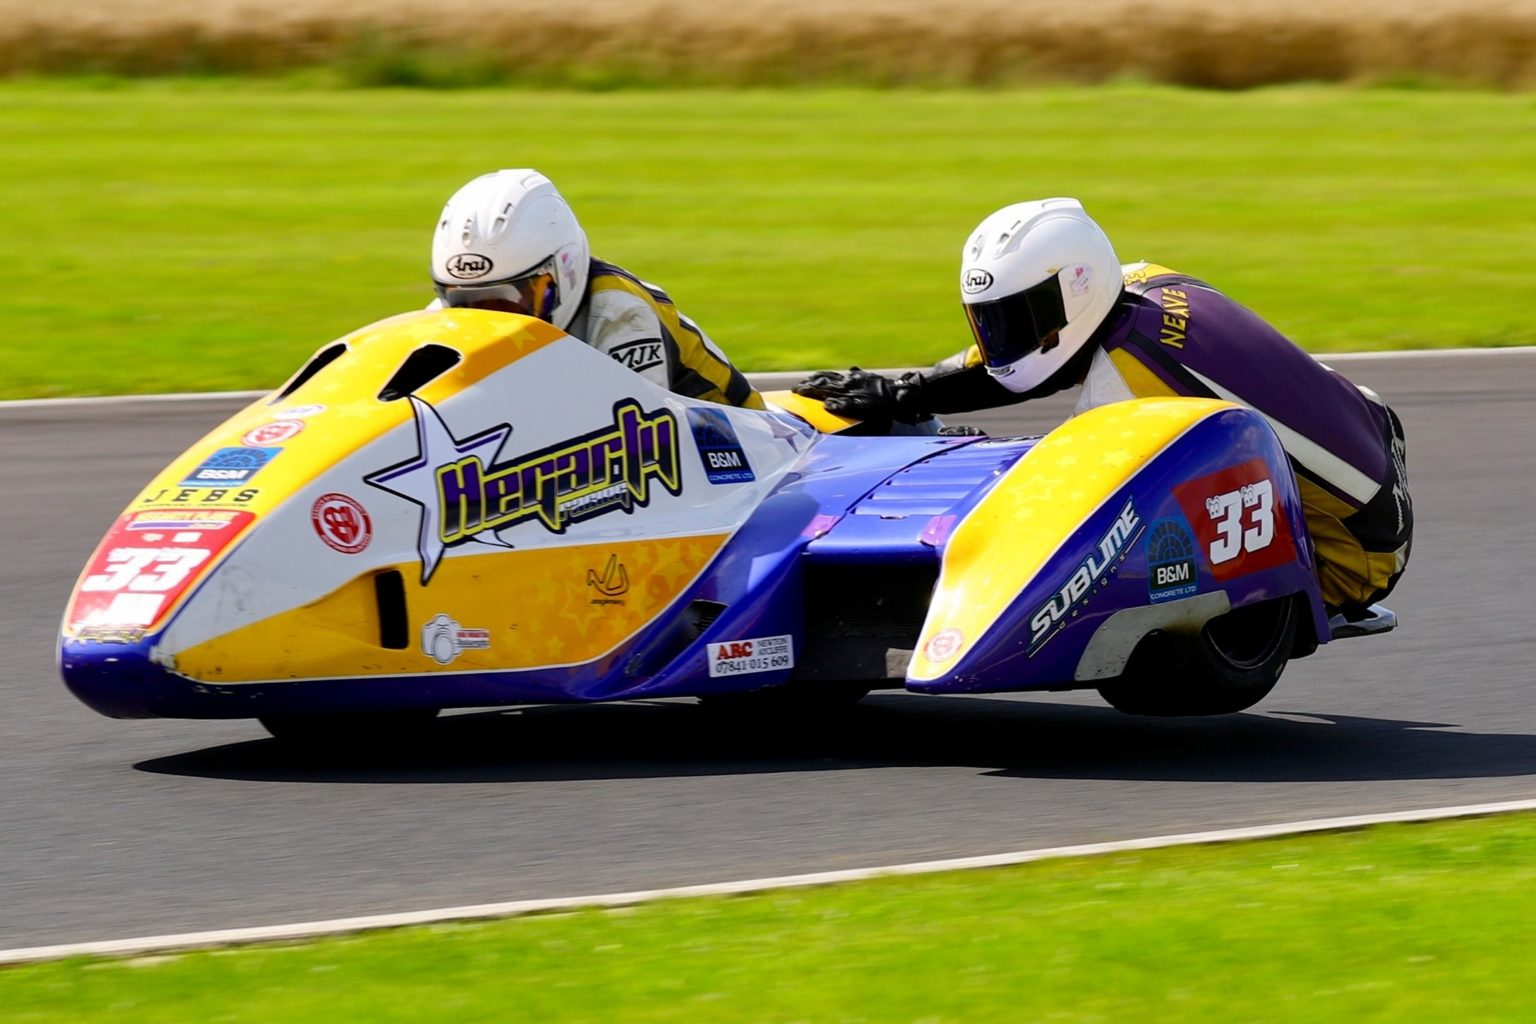 Hegarty and Neave snagged their first FSRA F2 win by just over half a second...